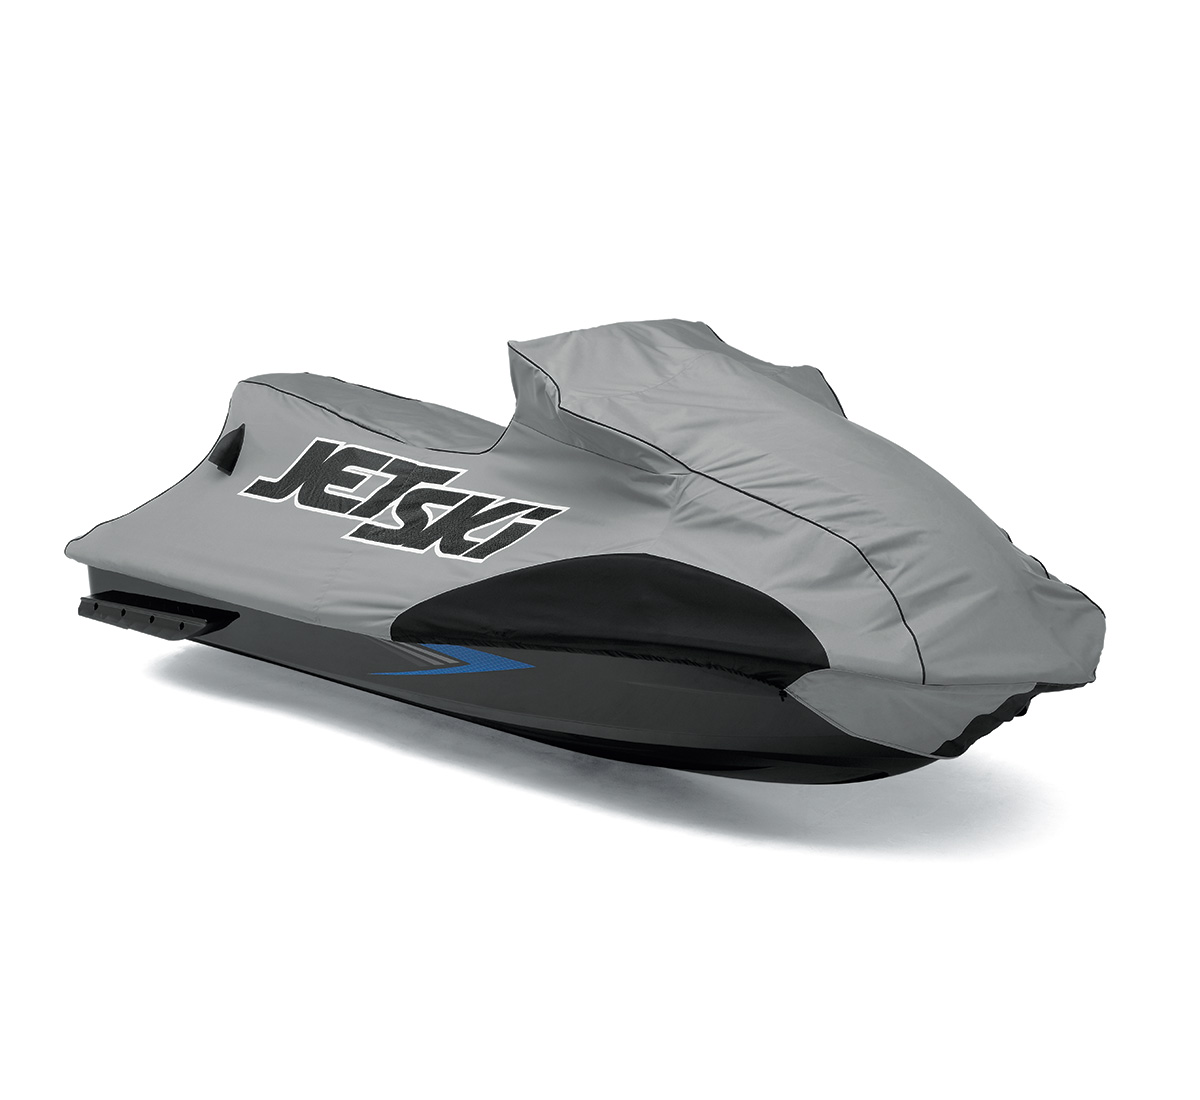 small resolution of vacu hold jet ski 300 cover